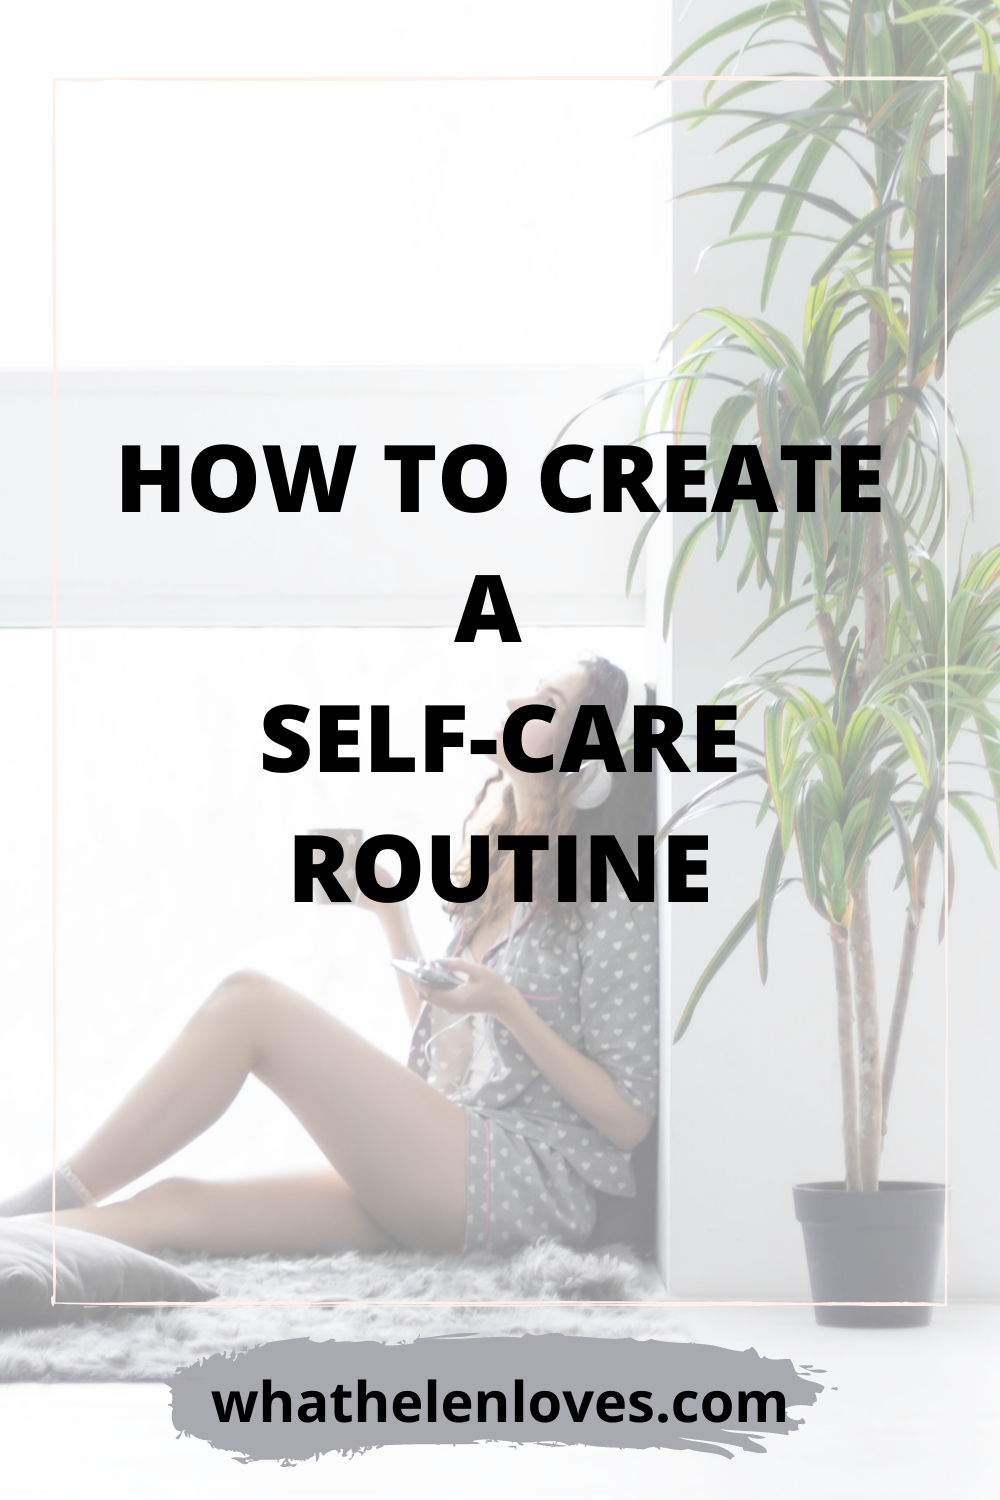 Pinterest pin for a post about How To Create A Self-Care Routine